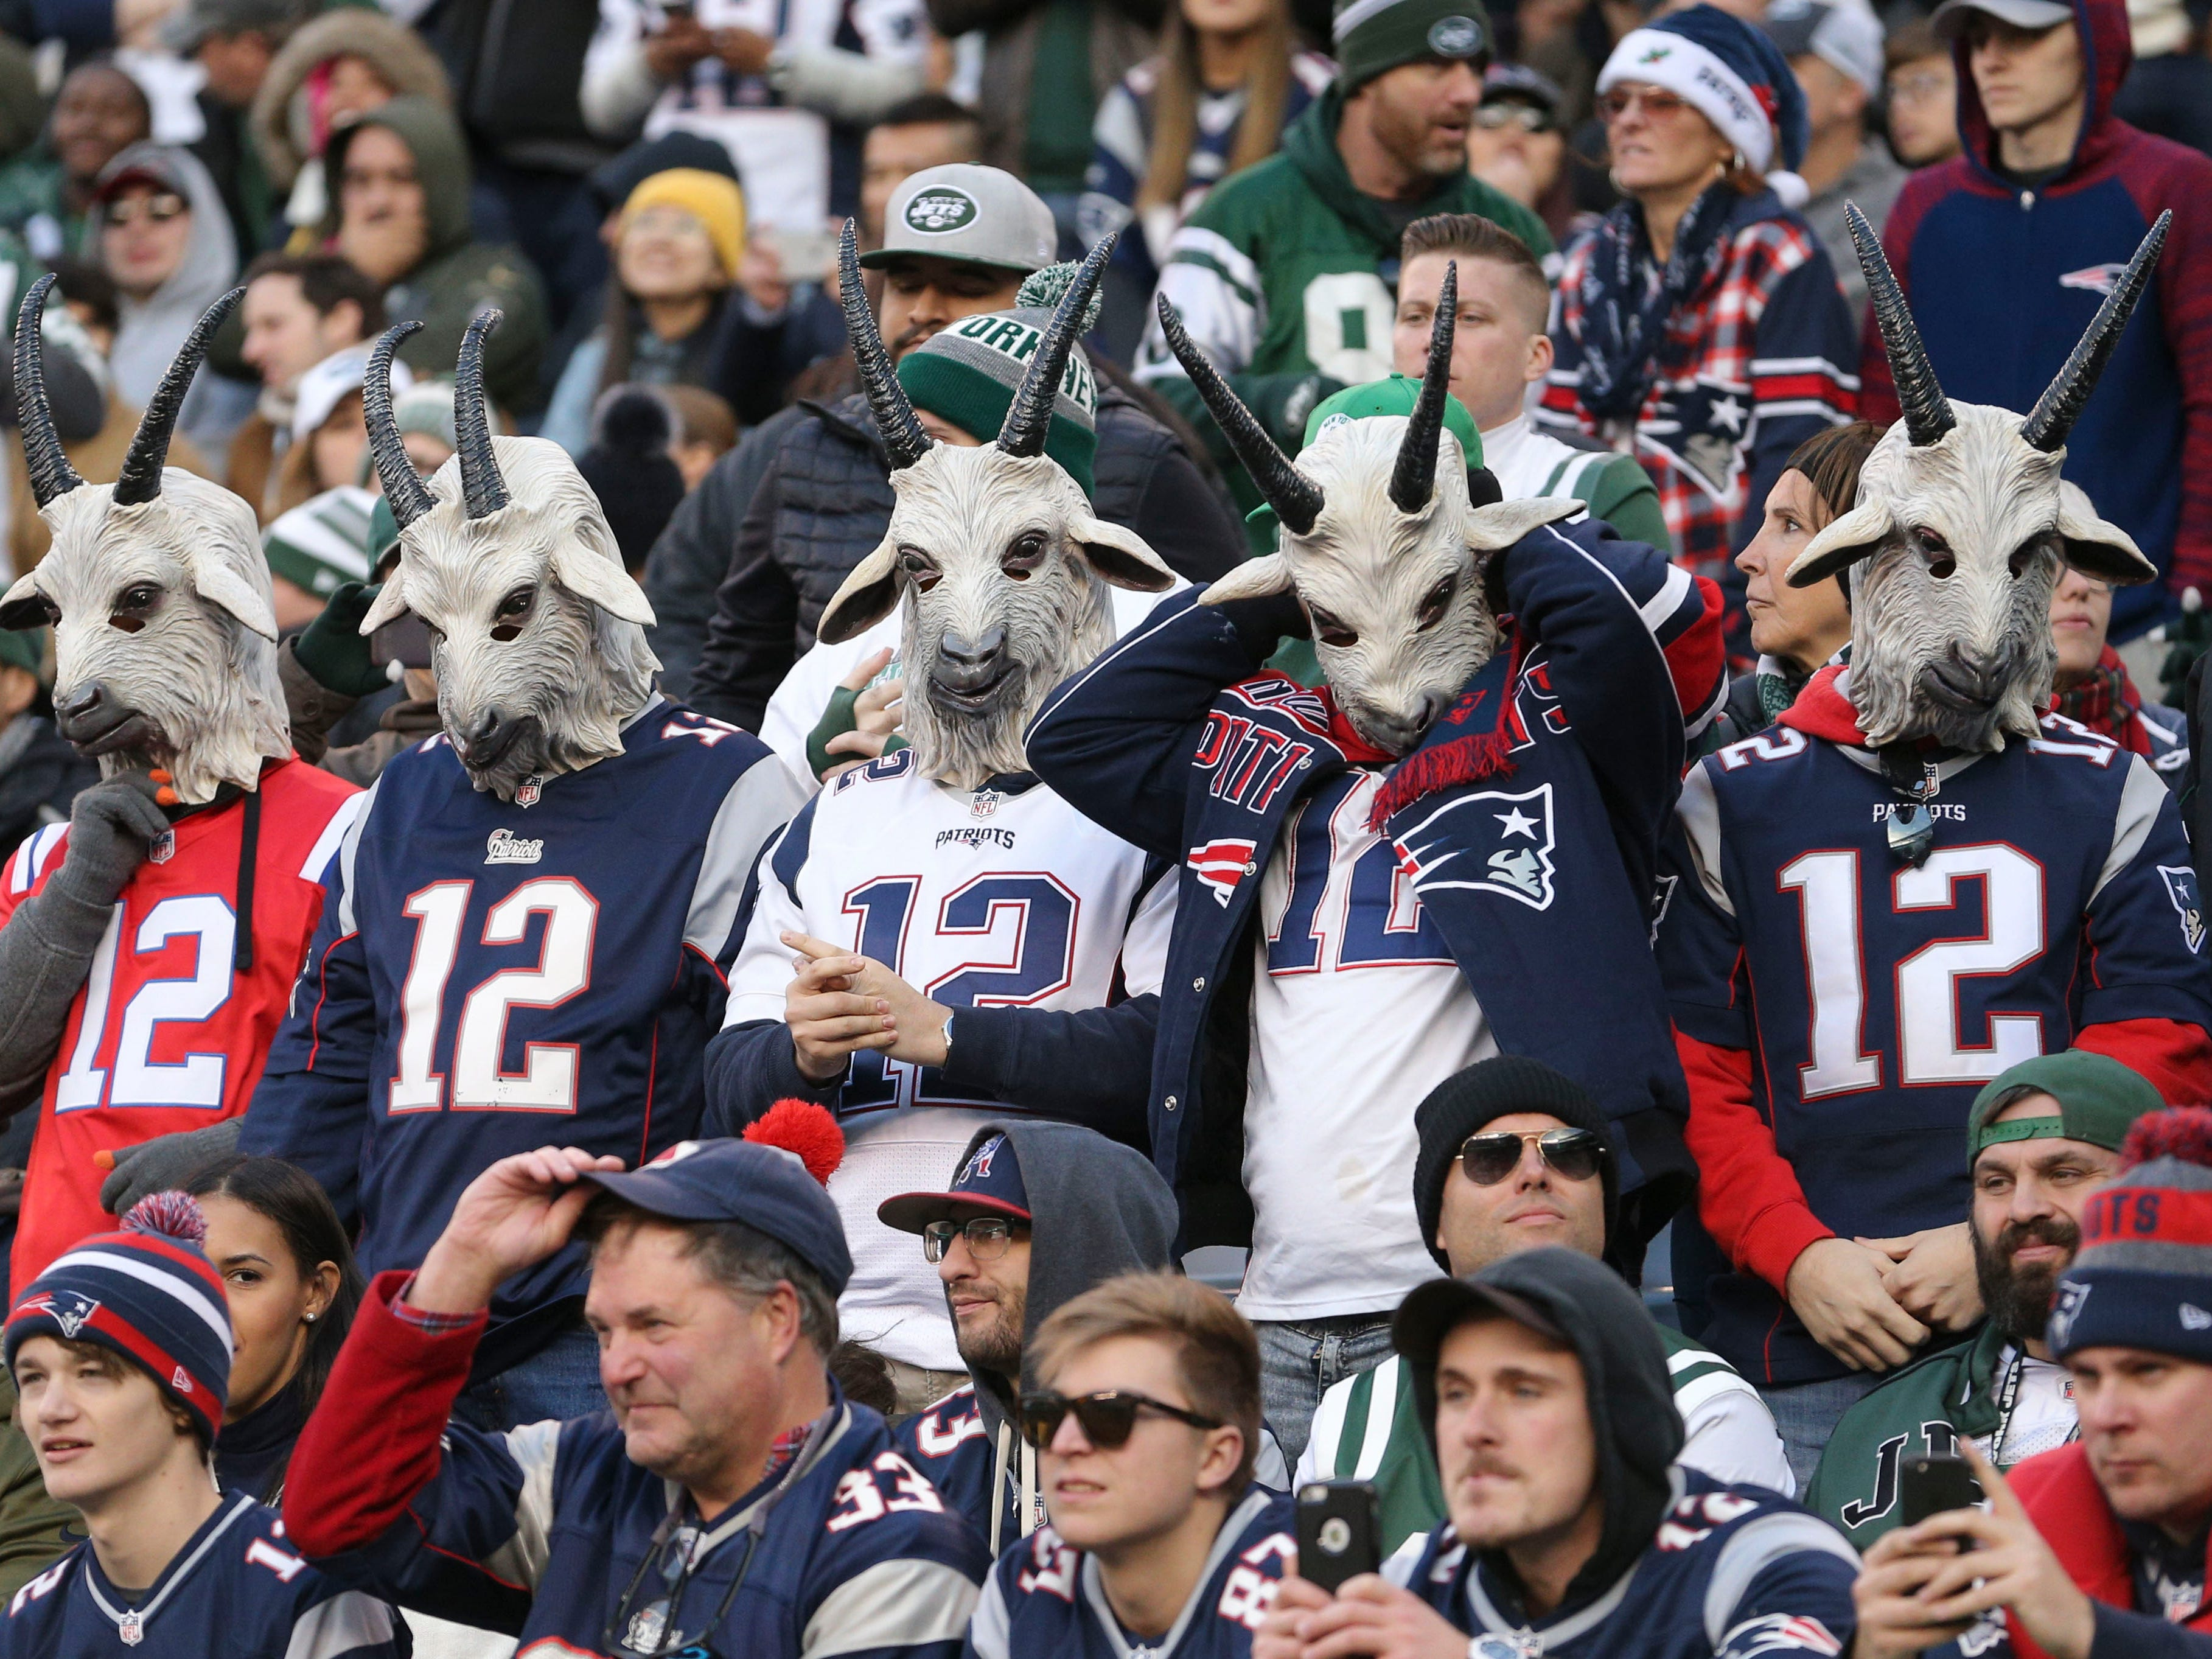 Fans wearing New England Patriots quarterback Tom Brady jerseys and goat masks stand during the fourth quarter against the New York Jets at MetLife Stadium.